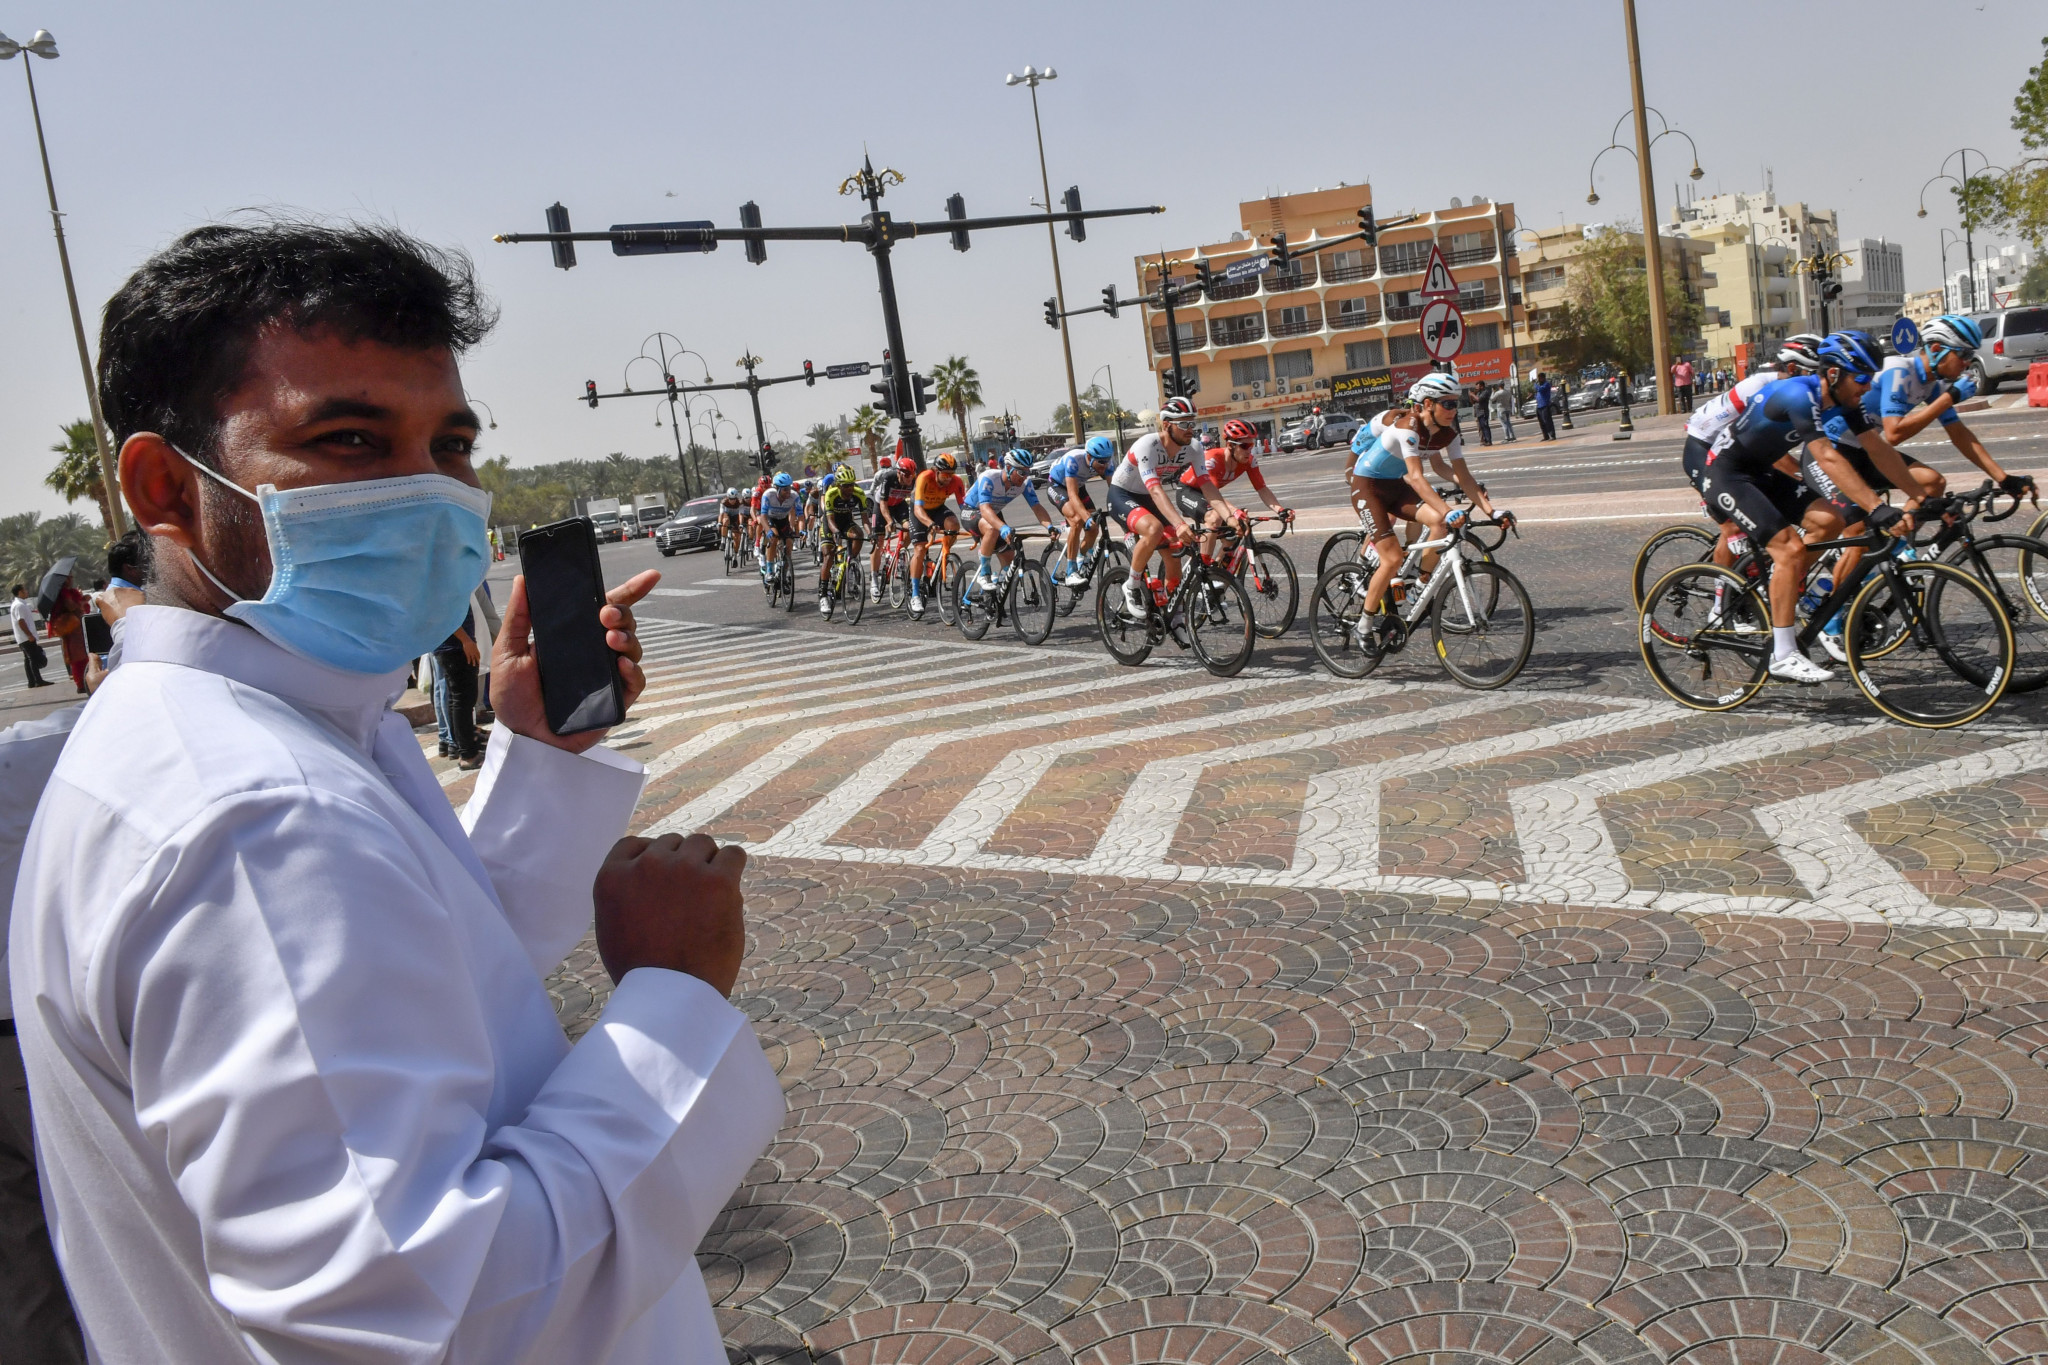 UAE Tour cancelled as two staff members test positive for coronavirus